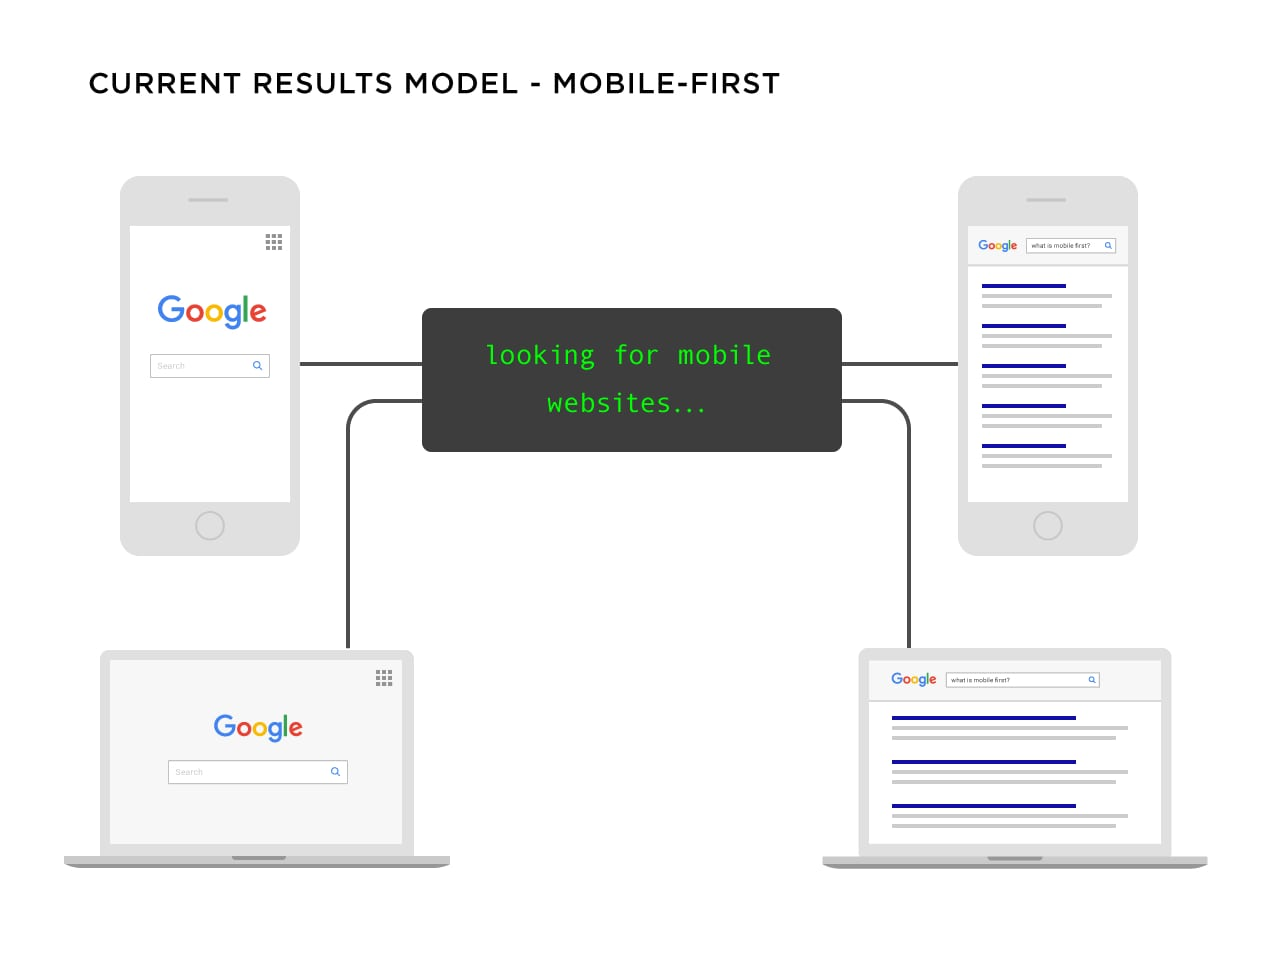 1_7_google-mobile-first-search-model